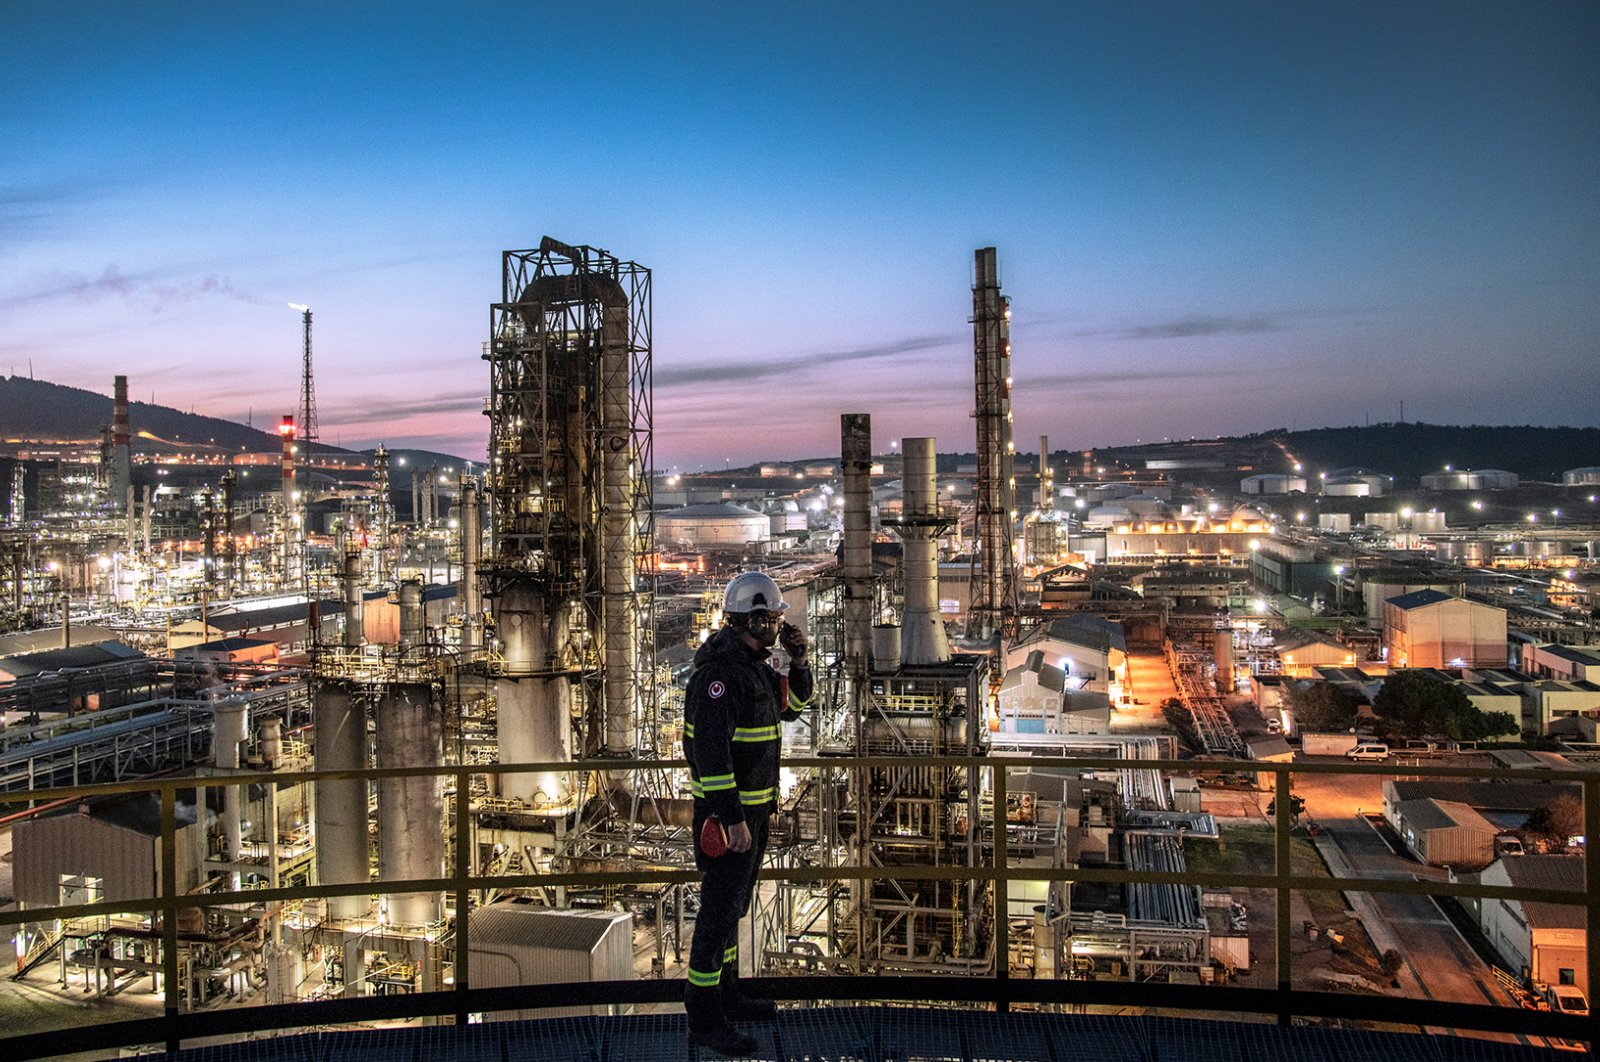 A worker is seen at TÜPRAŞ's oil refinery in western Turkey's Izmir. (Photo courtesy of TÜPRAŞ)